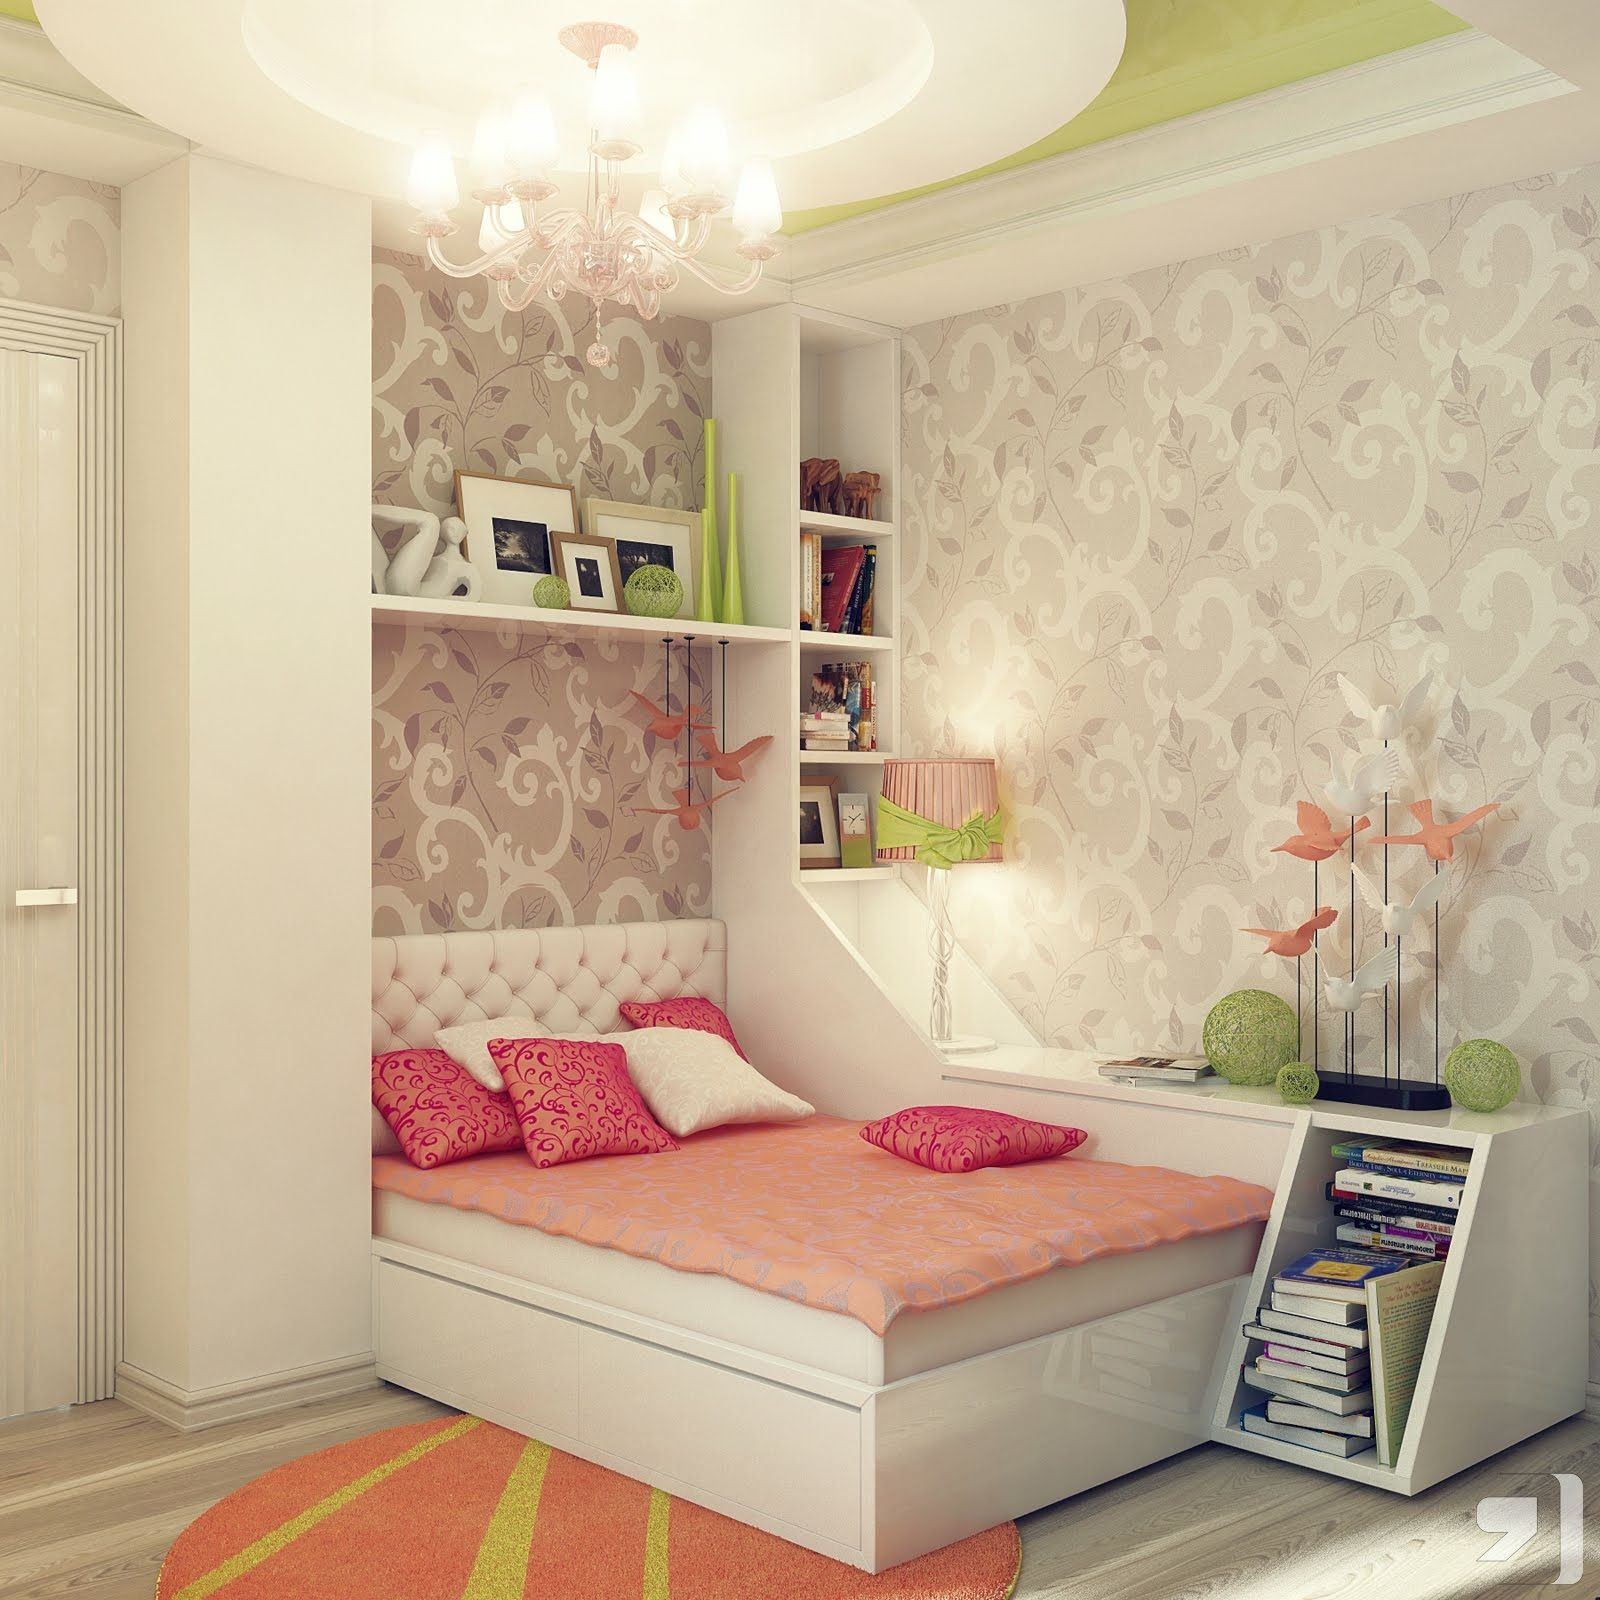 Bedrooms for girls green - Teen Room Peach Green Gray Girls Bedroom Decor